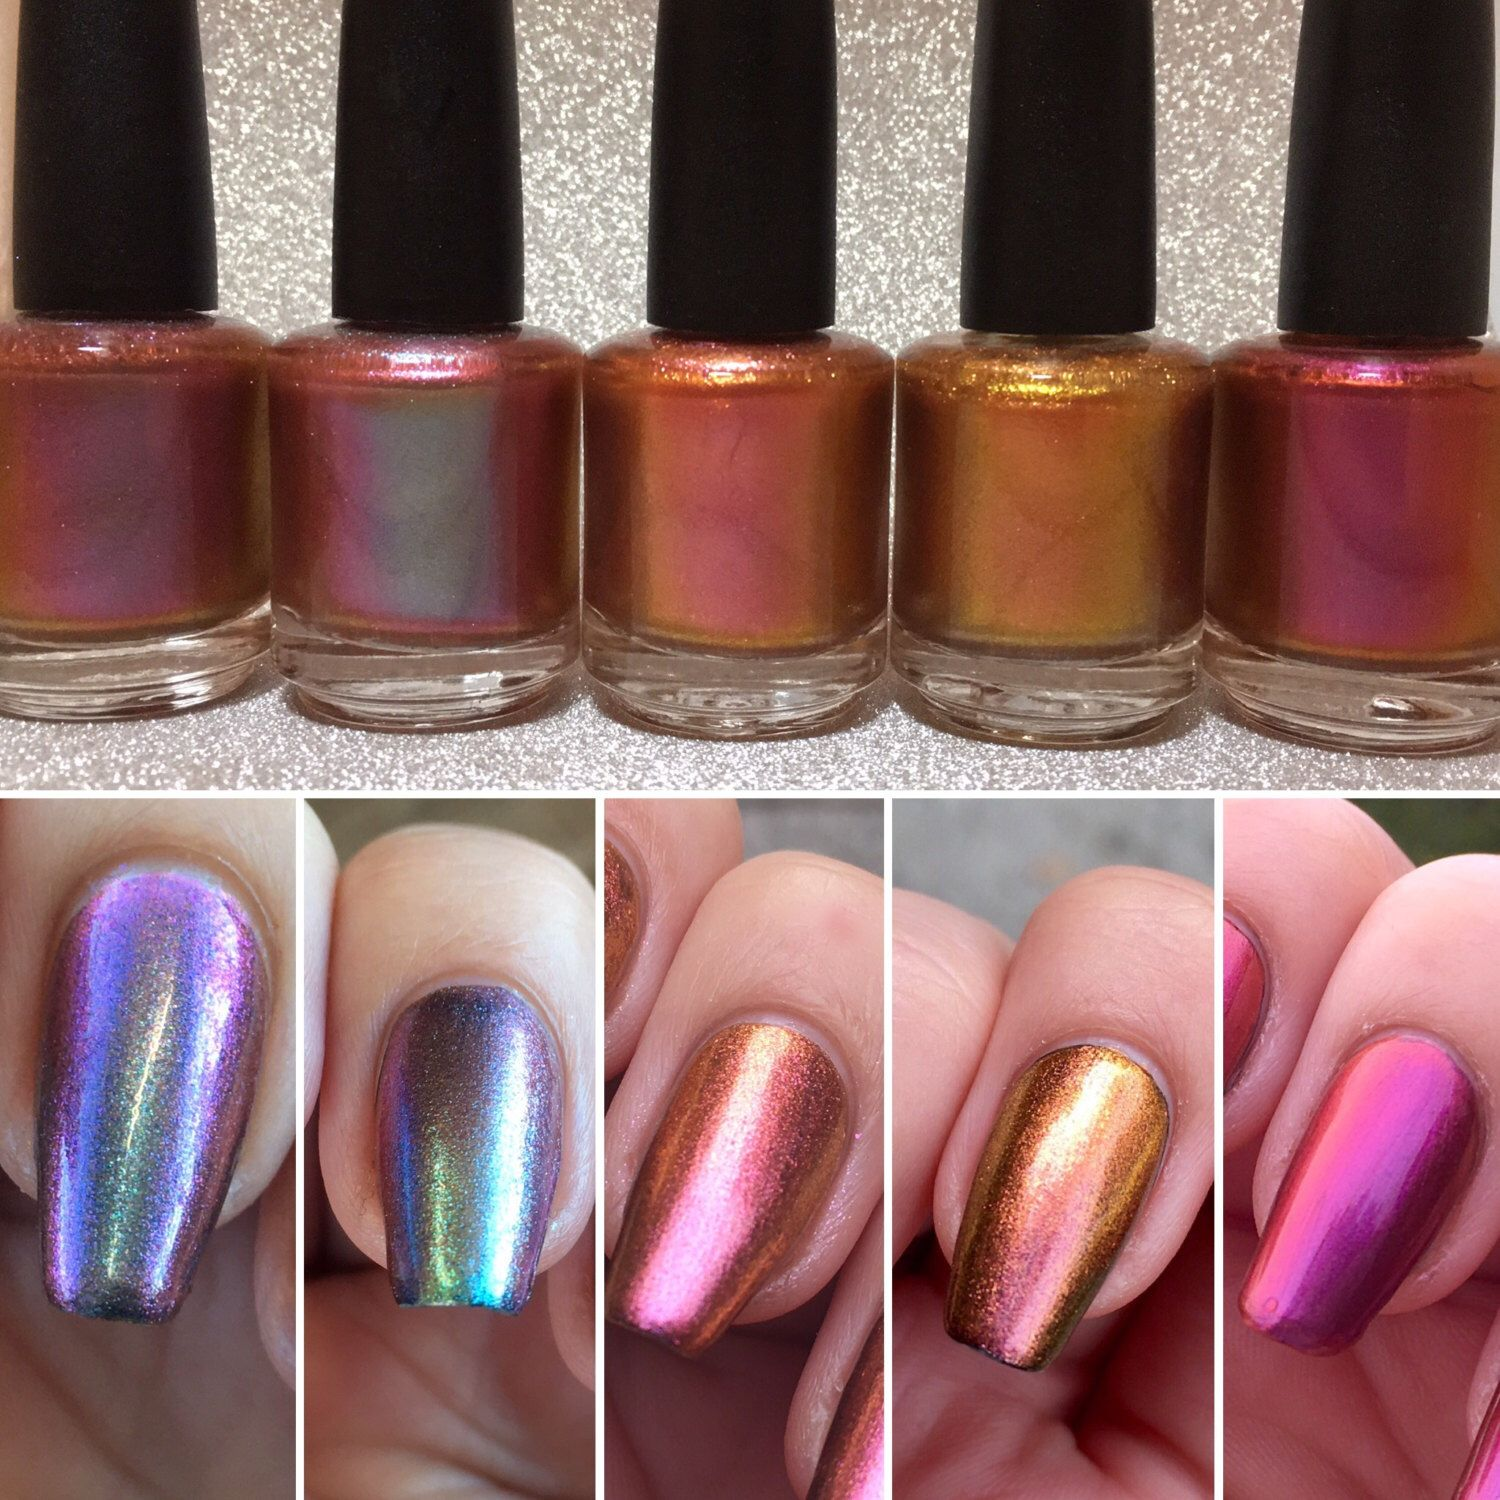 FIRST COLLECTION by Sorcery Nail Polish, 5Free, Cruelty